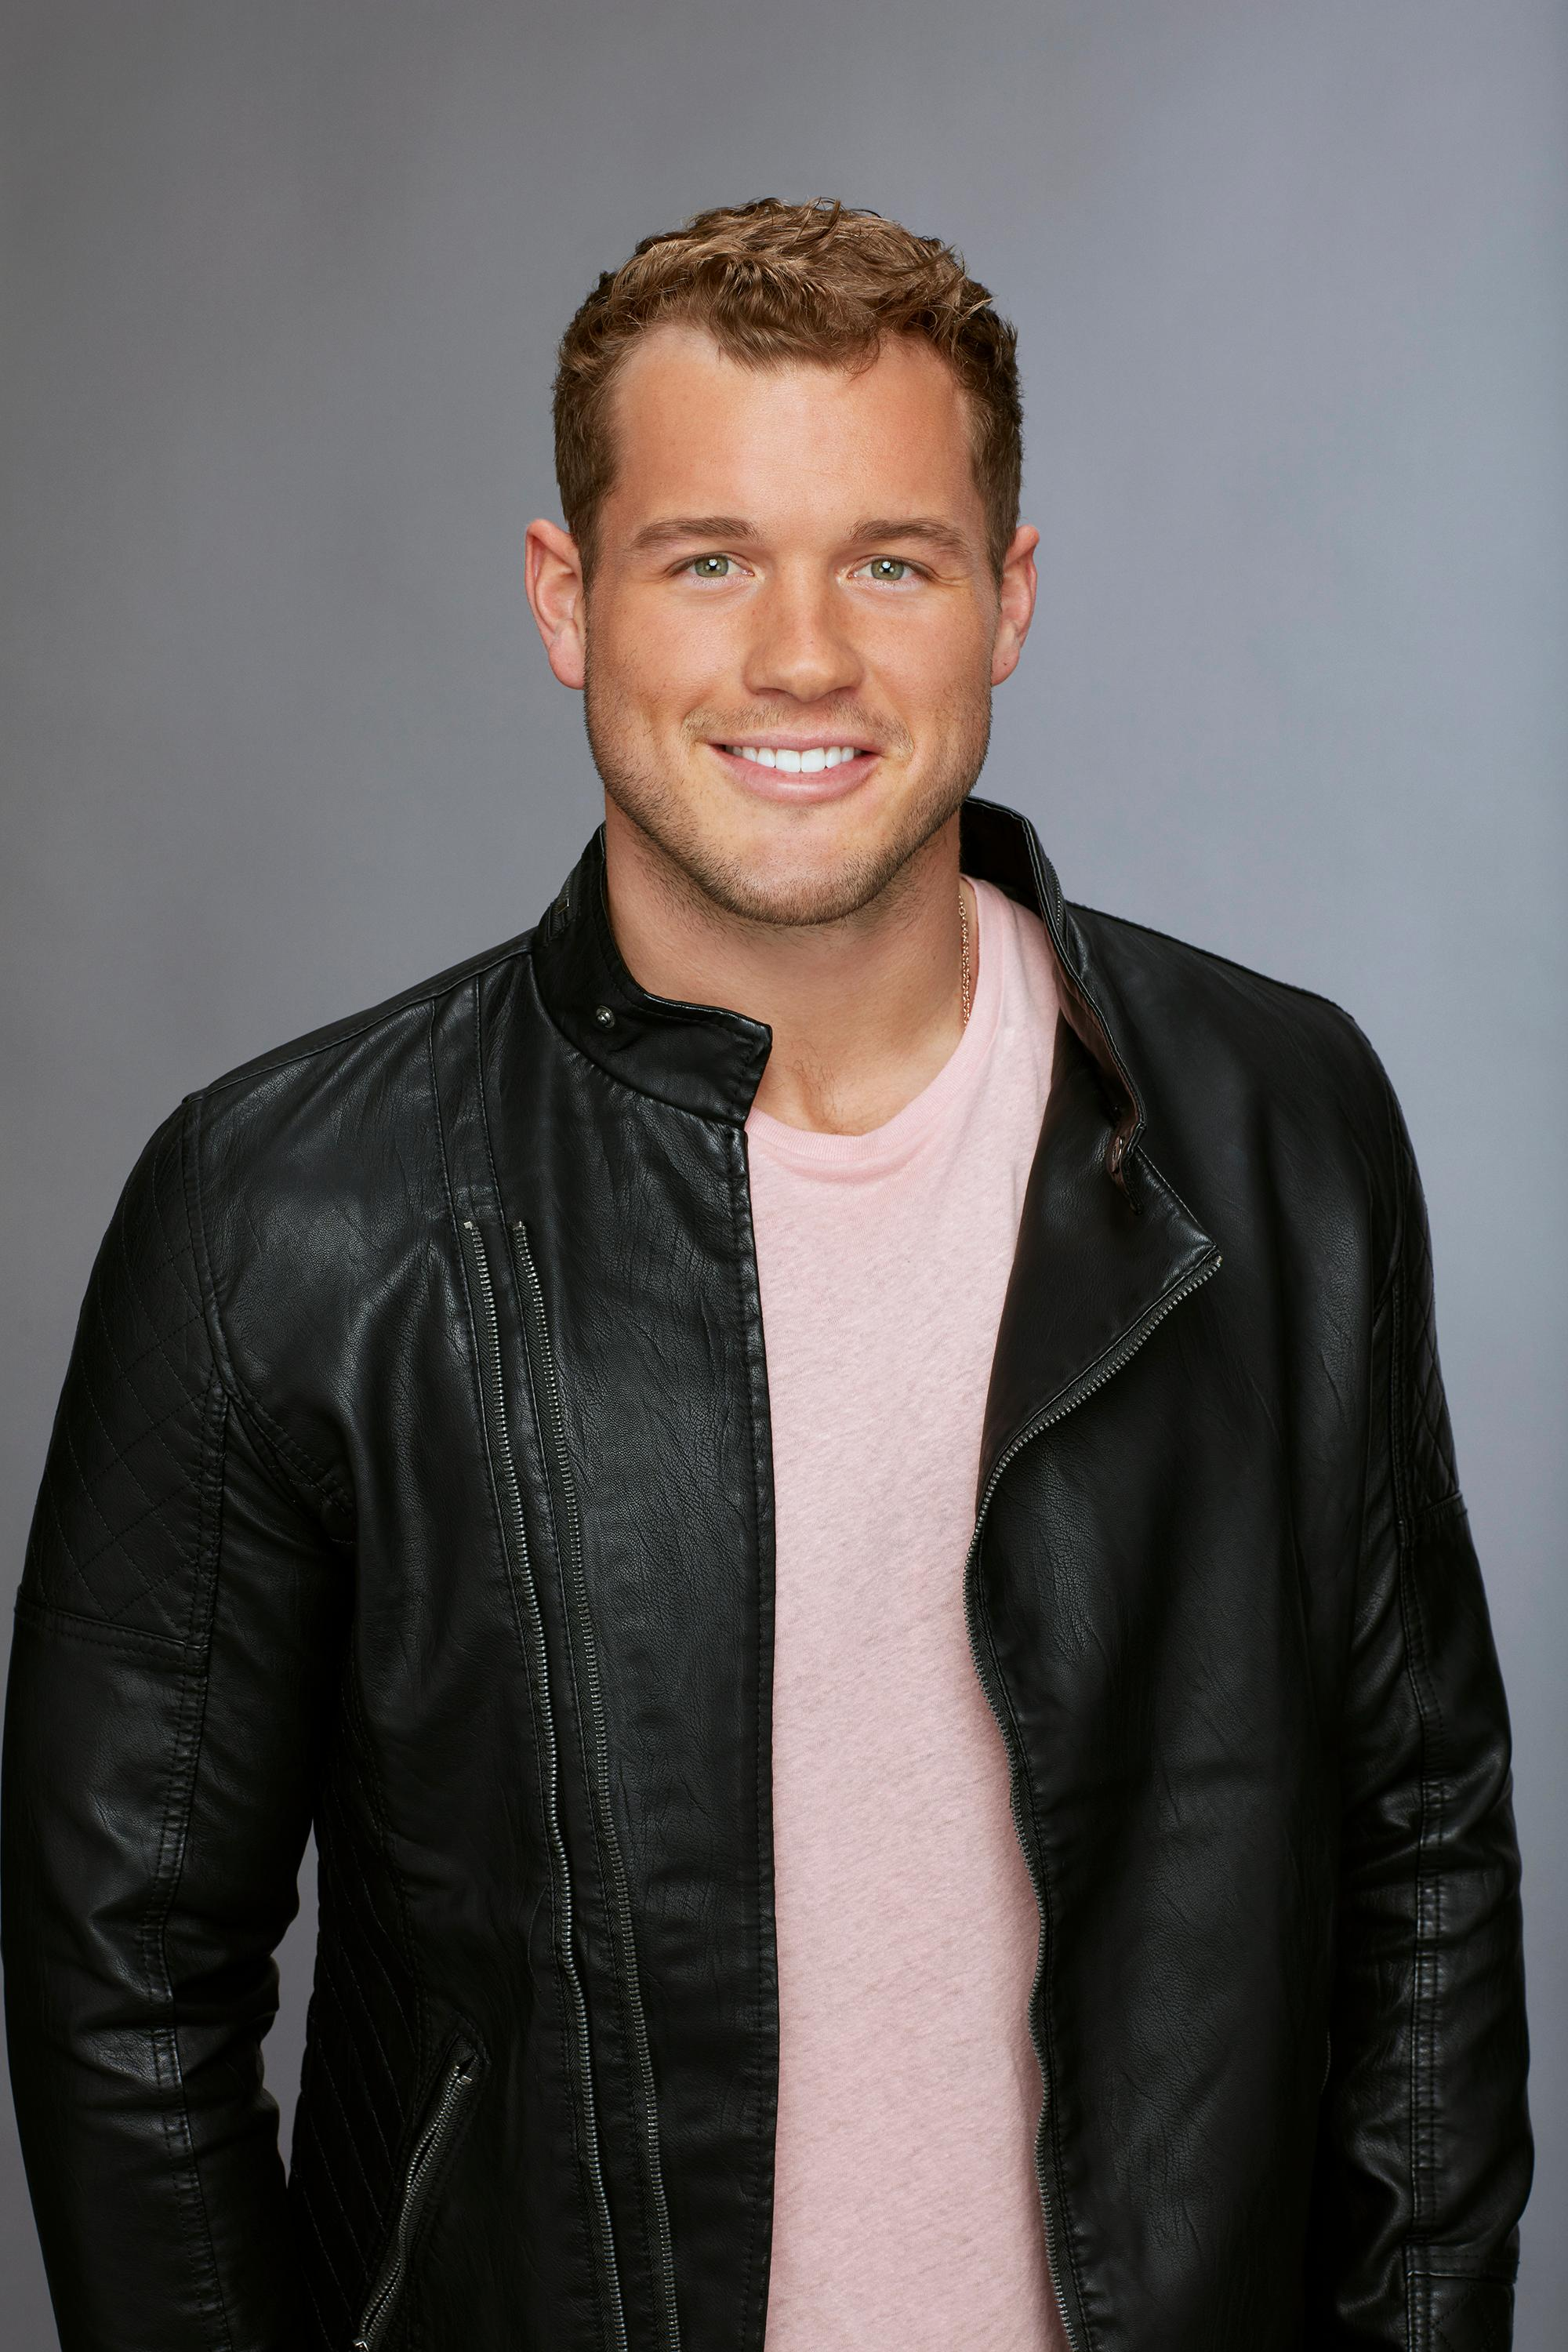 Can I just say that I am officially over whoever gets to make the Bachelor selections at this point? I mean first we had the Nick instead of Luke debacle. Then there was the Arie over ANYONE ELSE IN FRANCHISE HISTORY selection. Now, ABC has gone and broken our hearts again and selected Colton Underwood as the next bachelor, rather than the perfect and scrumptious Jason{ } Tartick. #TeamJasonForever (Image: ABC/Craig Sjodin)